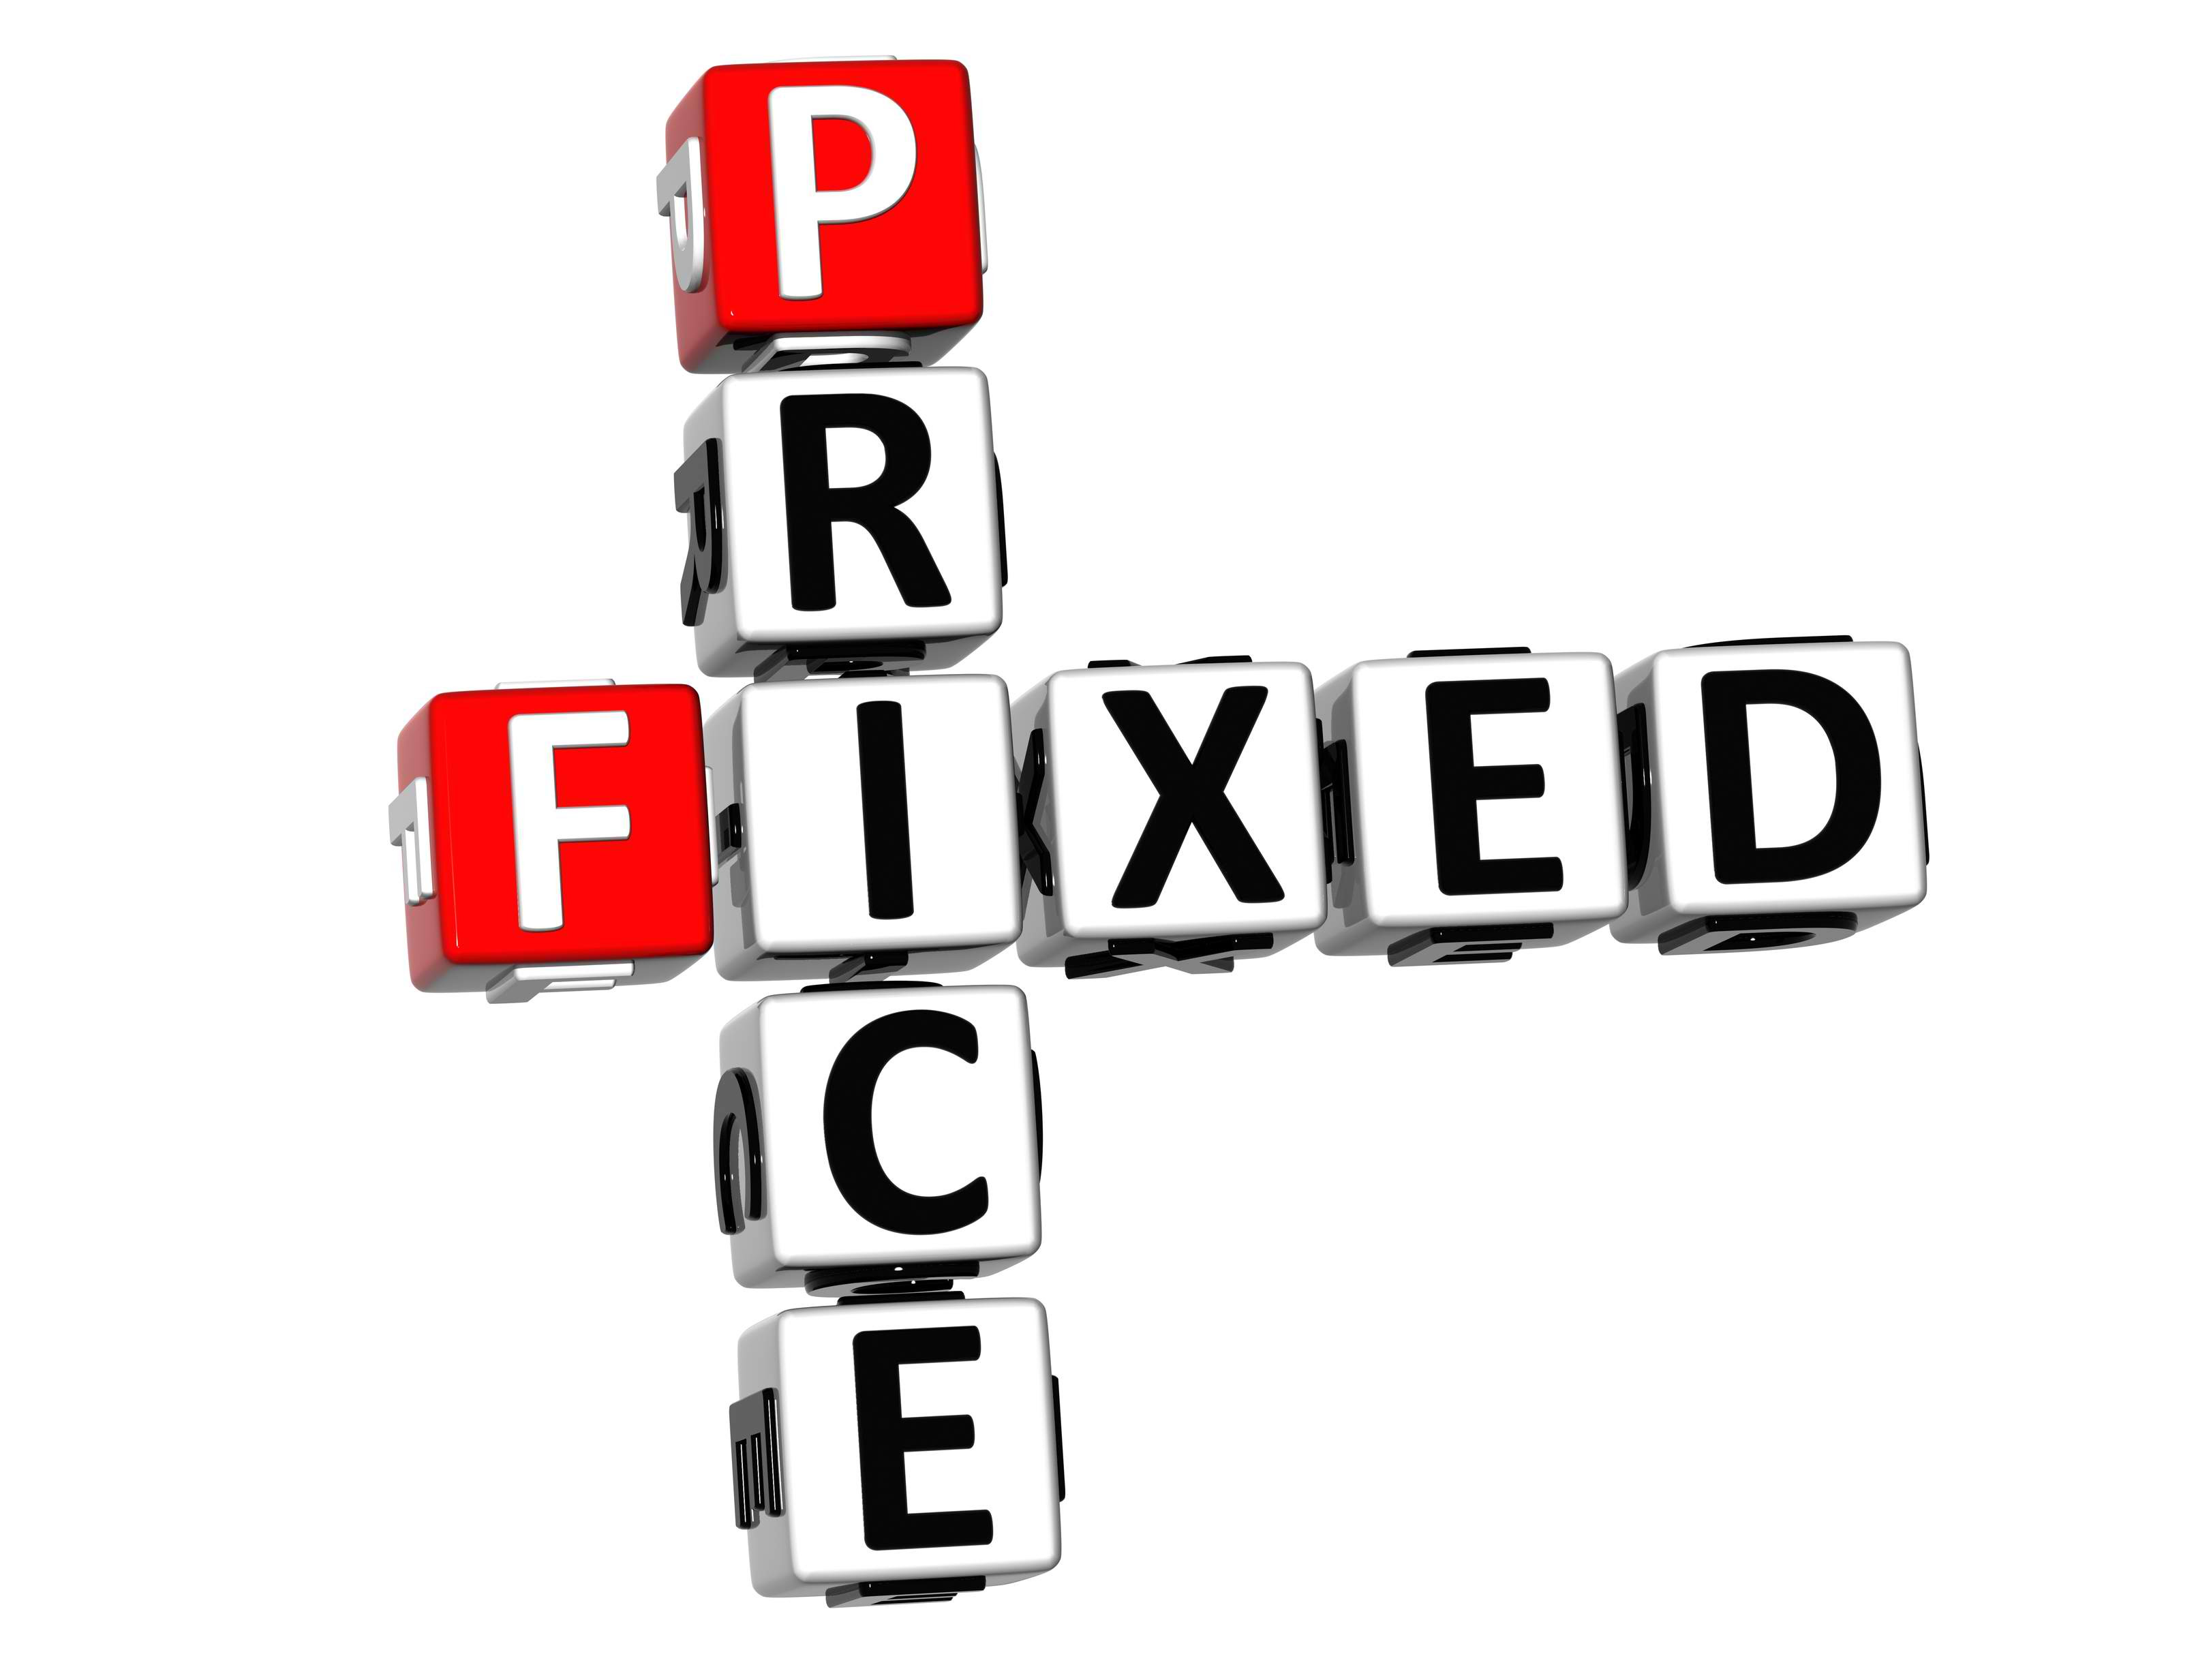 Information needed to provide a fixed fee quote for a business valuation